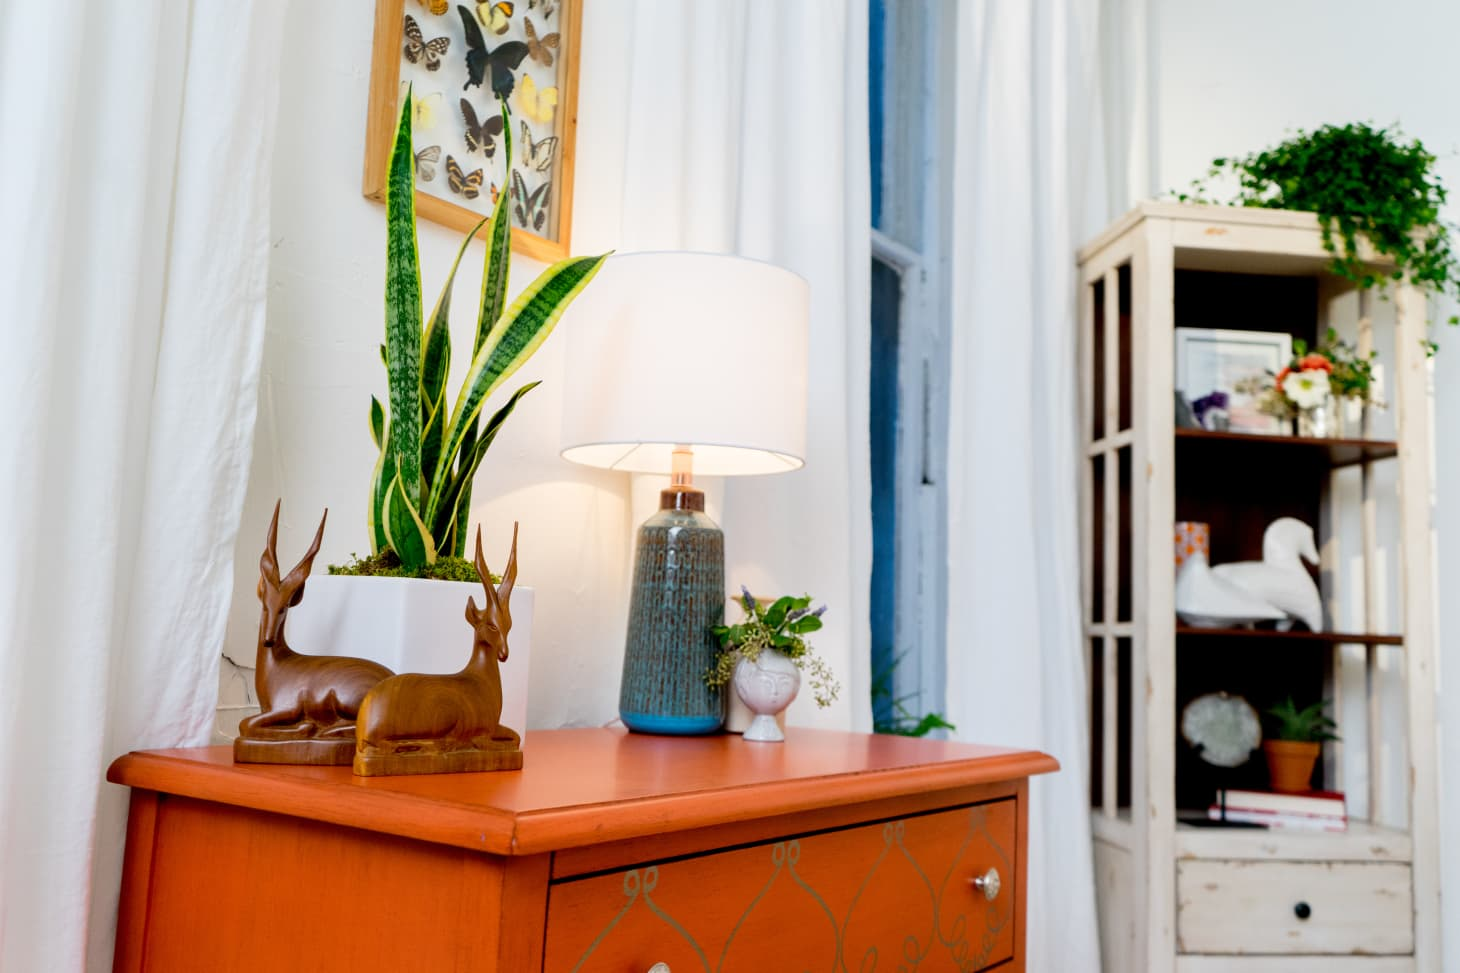 Bedroom From Scratch: Boho Getaway Inspiration | Apartment ...